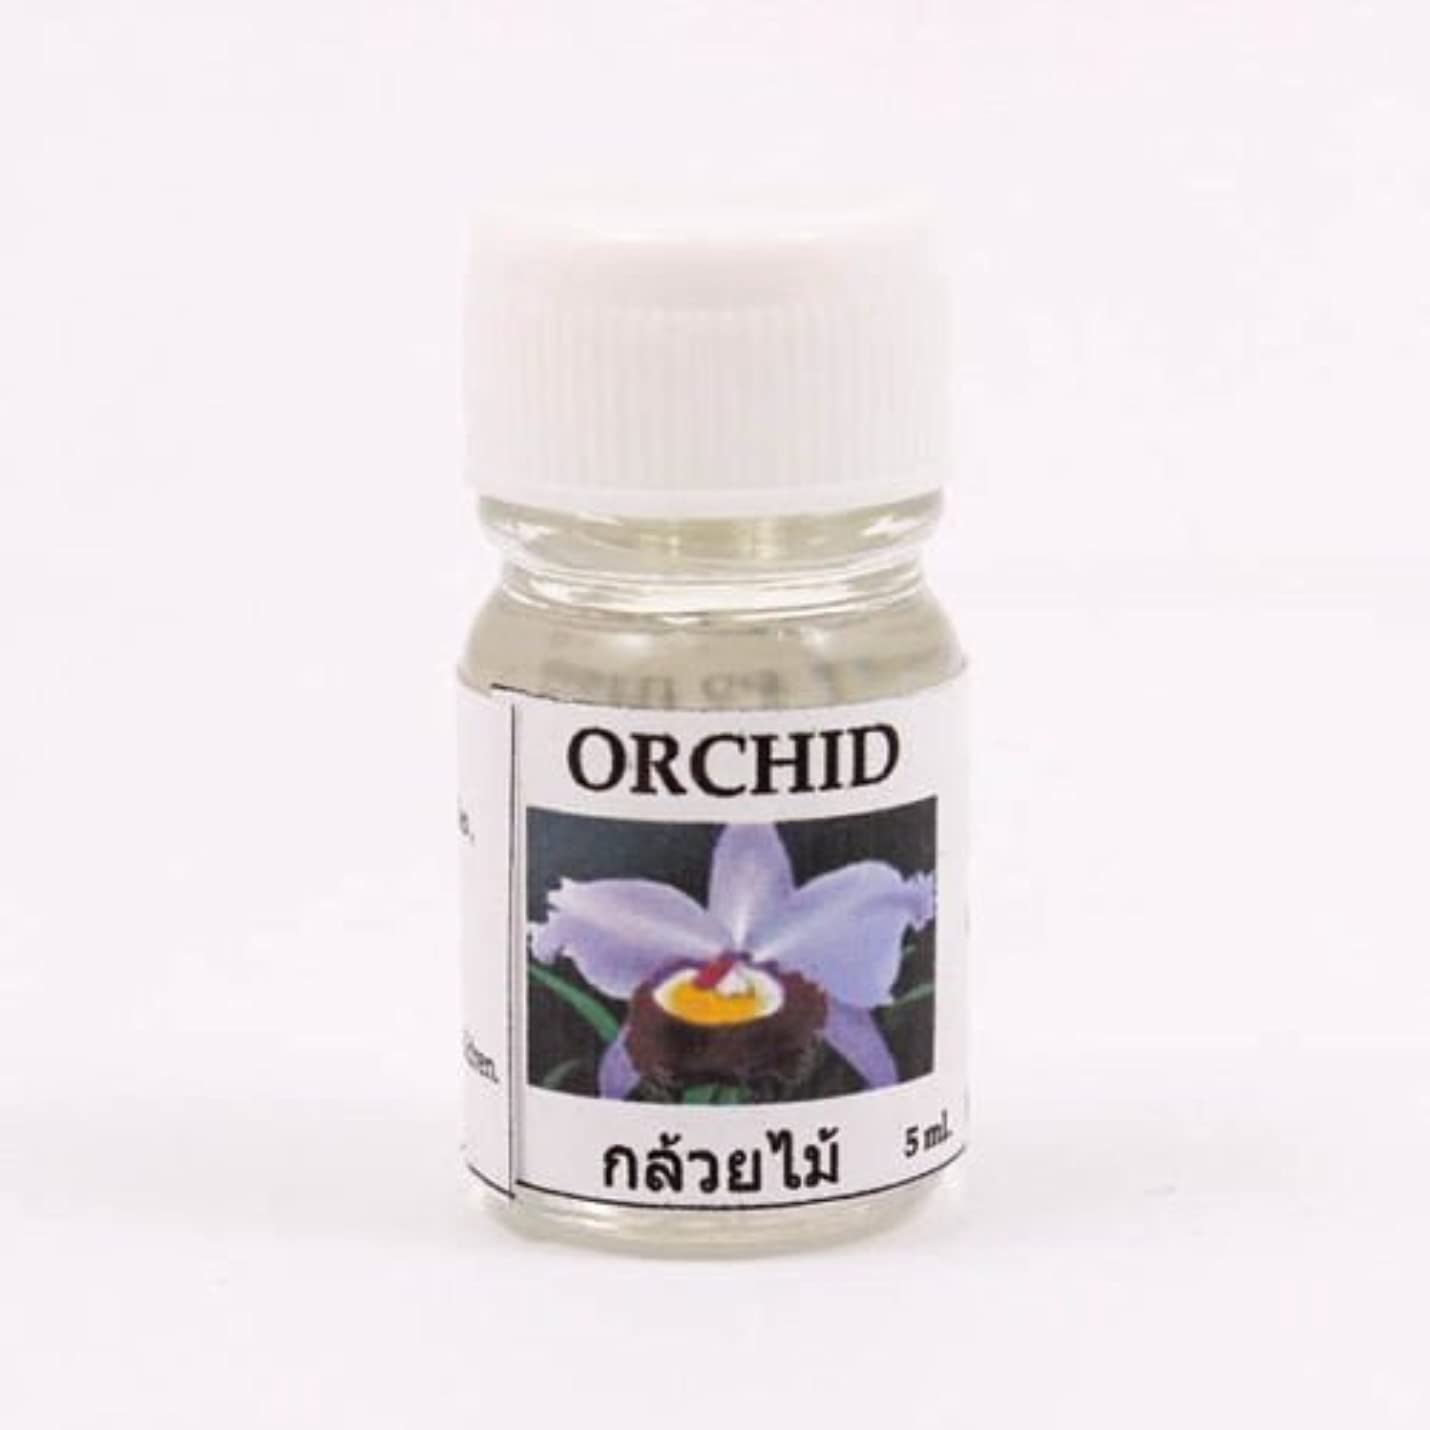 赤字シンジケート四分円6X Orchid Aroma Fragrance Essential Oil 5ML. (cc) Diffuser Burner Therapy